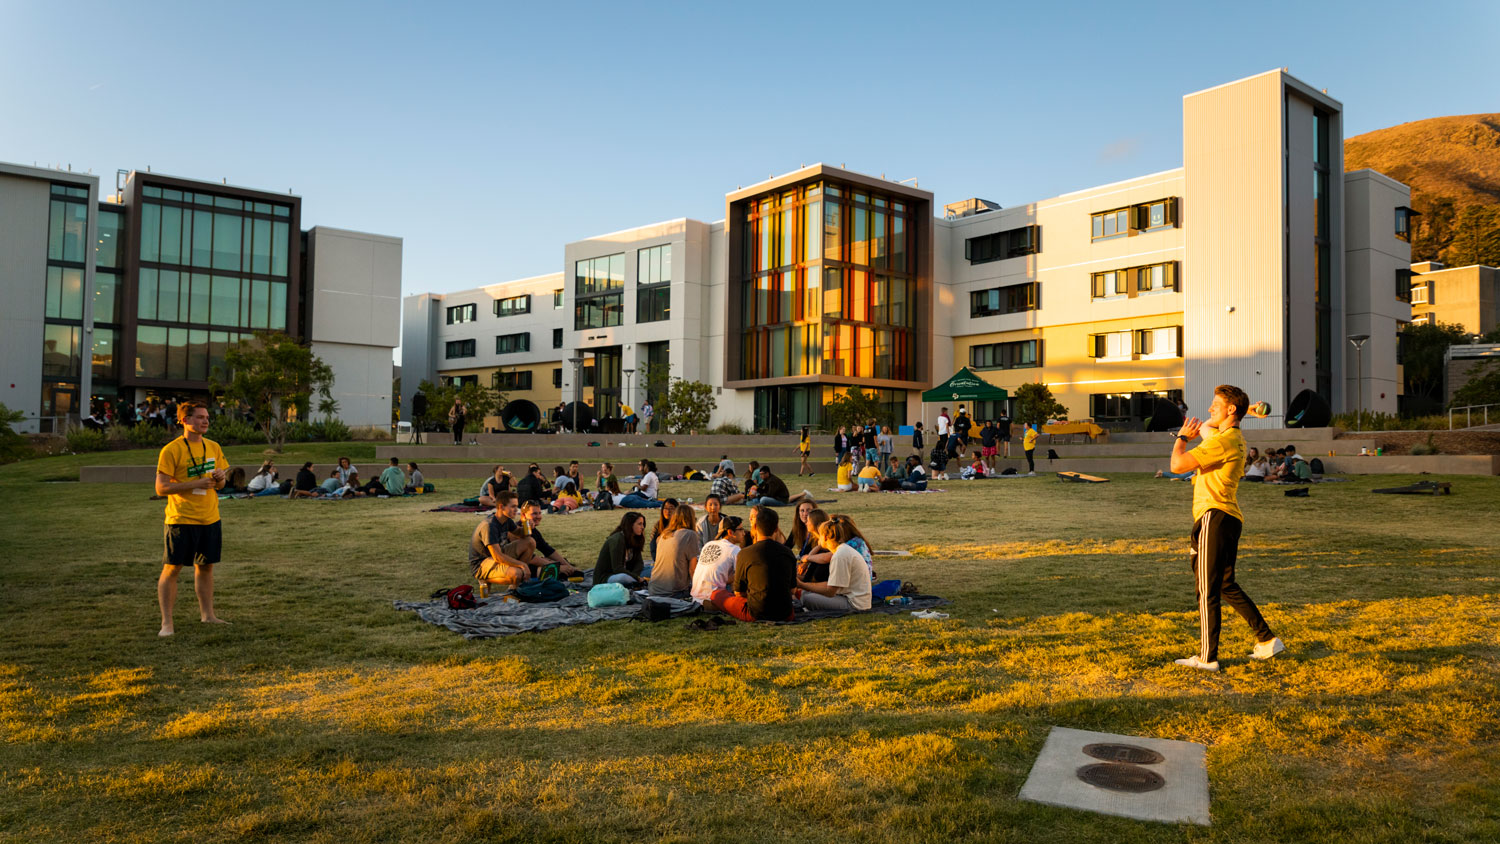 Cal Poly students listen to an accoustic concert on campus during sunset.